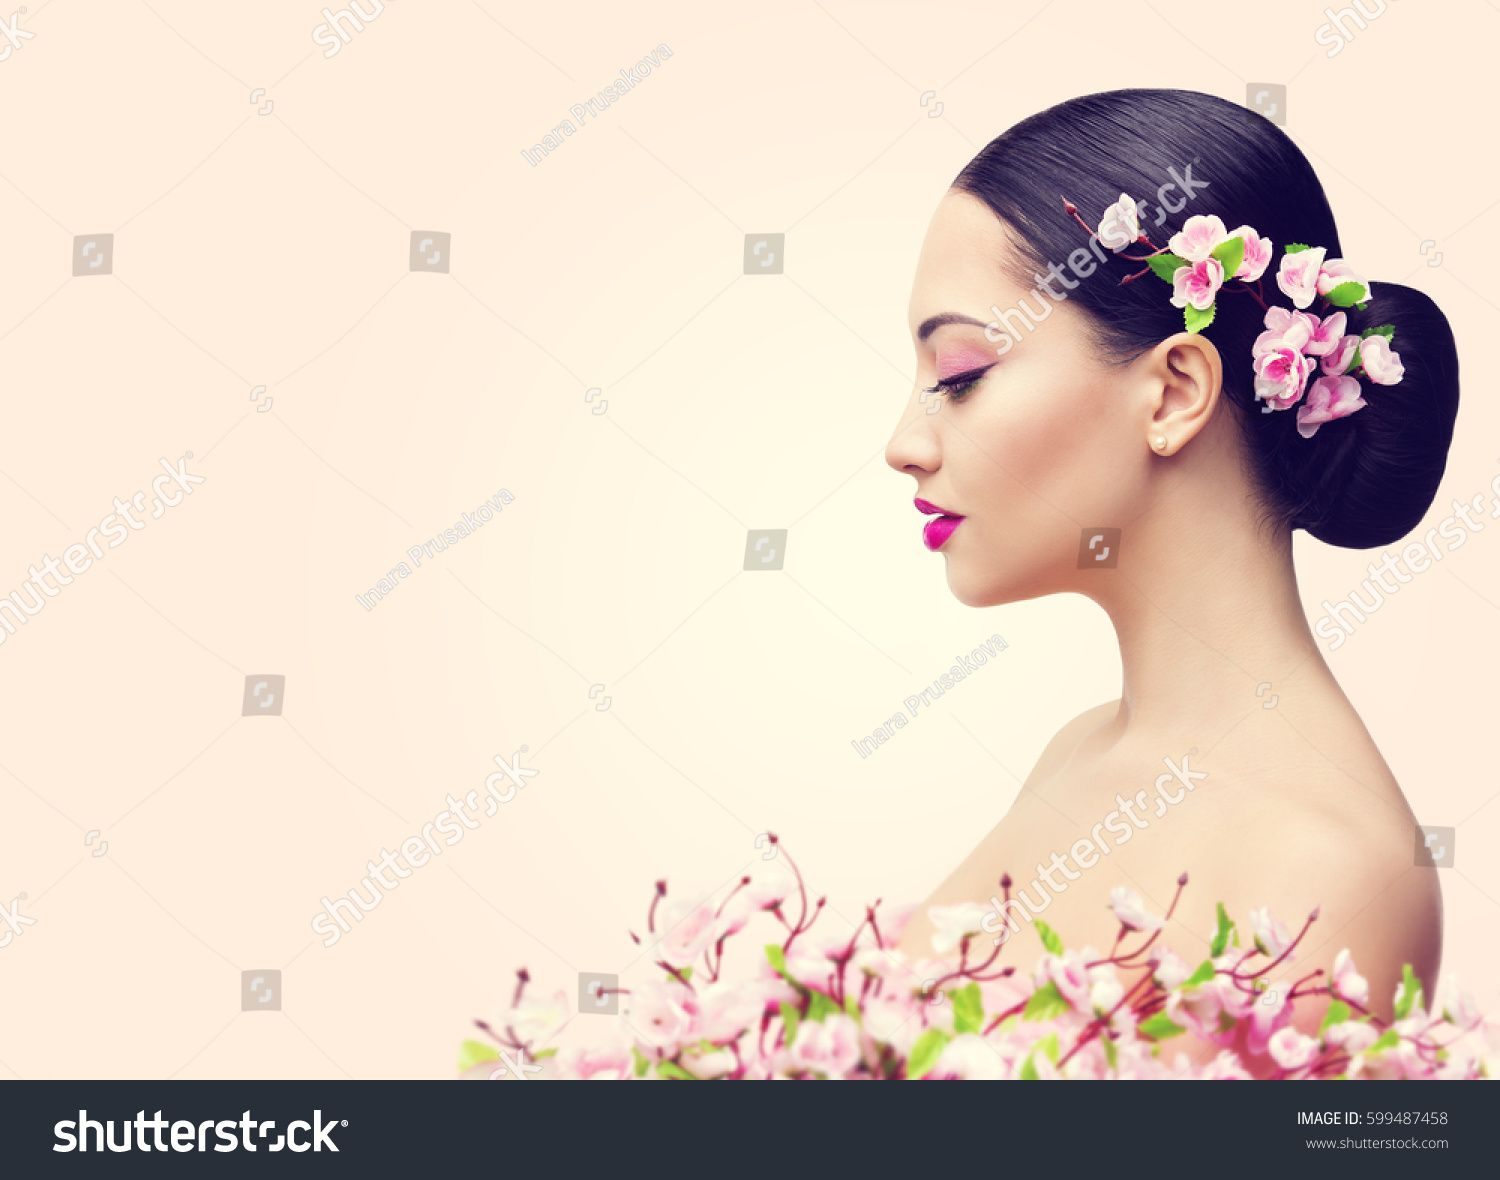 Japanese Girl and Flowers, Asian Woman Beauty Makeup Profile, Beautiful Fashion Model Side View over Pink Background #Sponsored , #Ad, #Woman#Beauty#Makeup#Asian